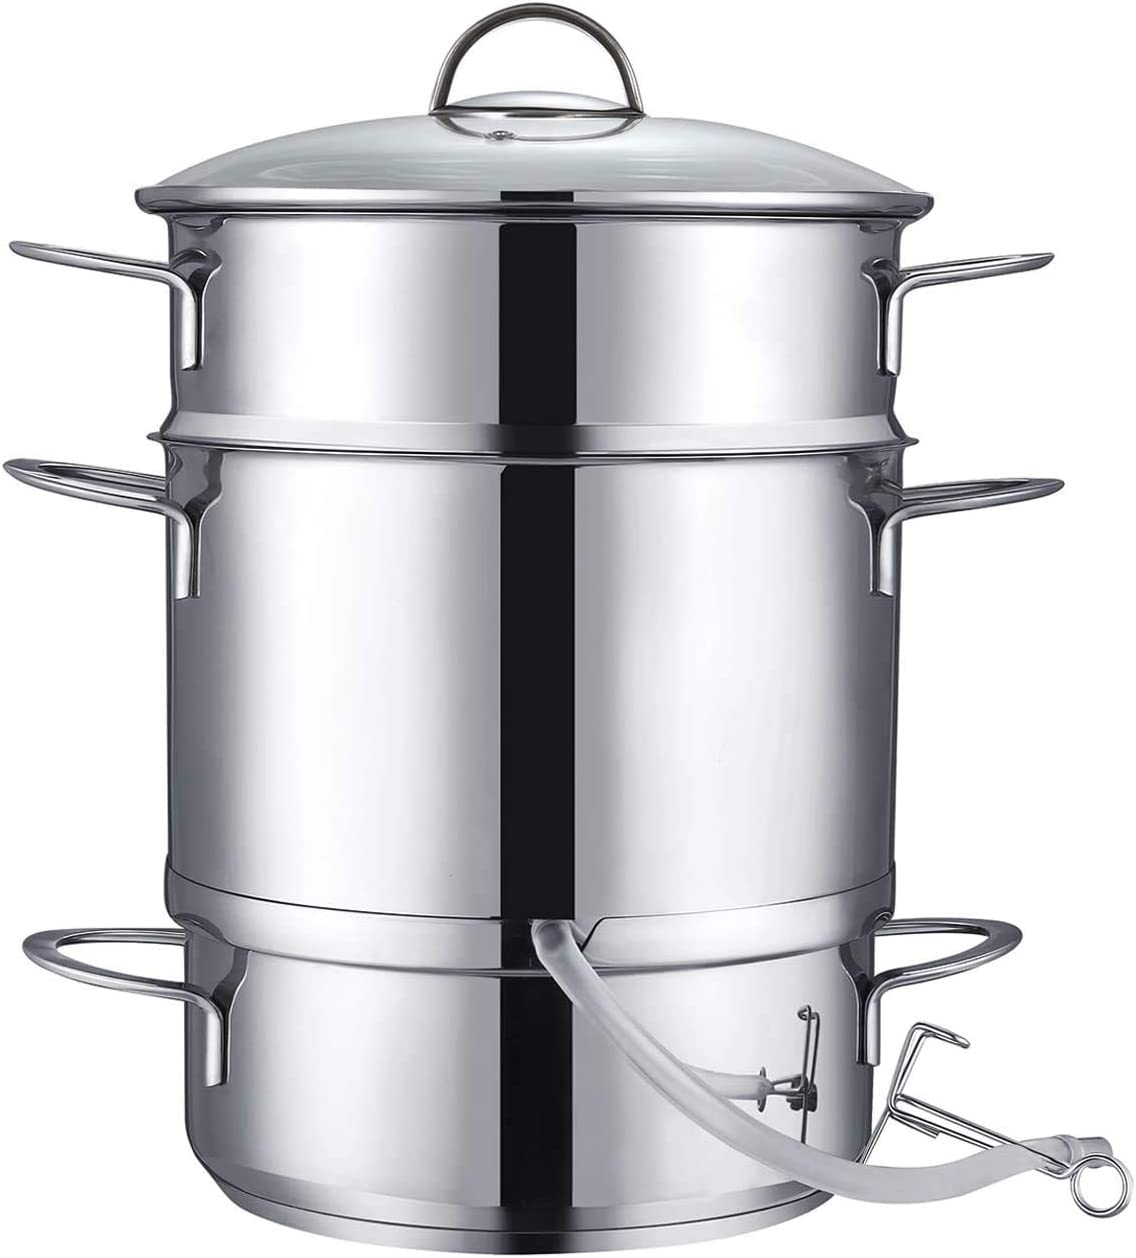 Mr. Right Juicer Steamer, 26cm 11-Quart Stainless Steel Fruit Vegetables Steamer For Food With Glass Lid Hose With Clamp Loop Handles, Perfect Home Kitchen Stainless Steel Cookware